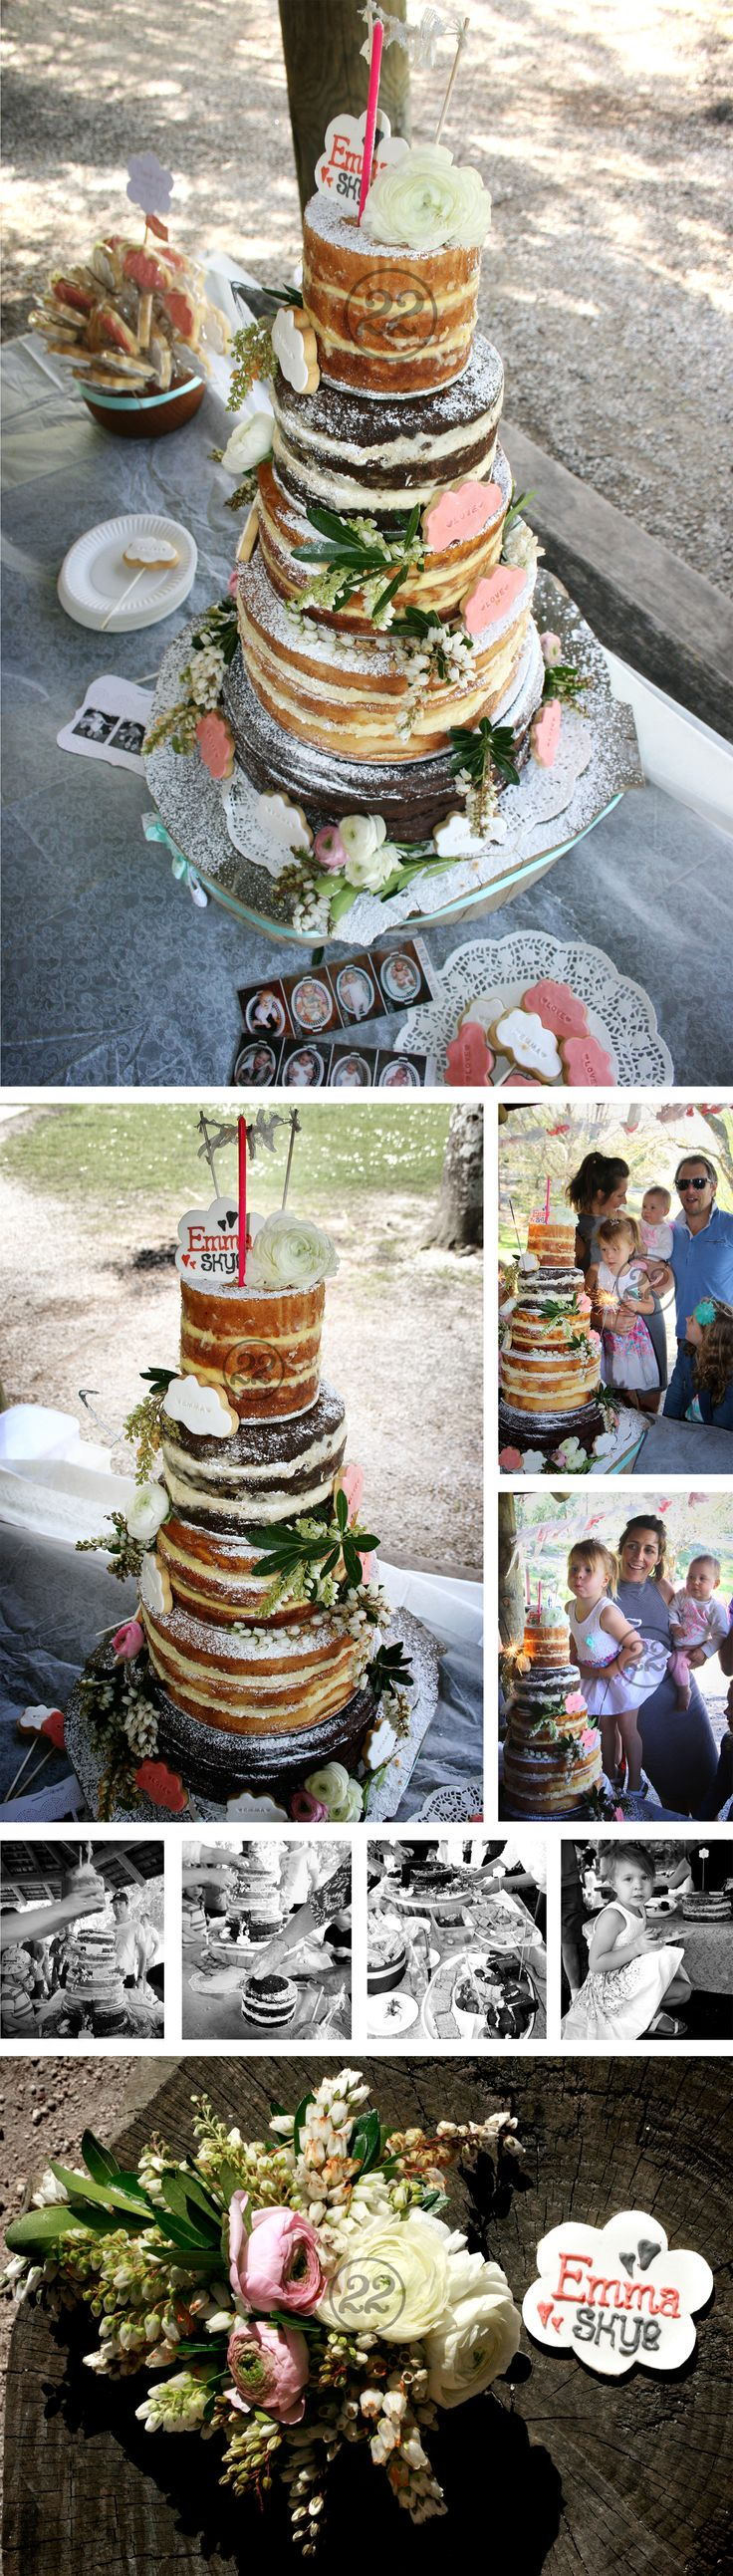 A beautiful rustic, shabby chic 'Sky' party theme cake for a 1st birthday party